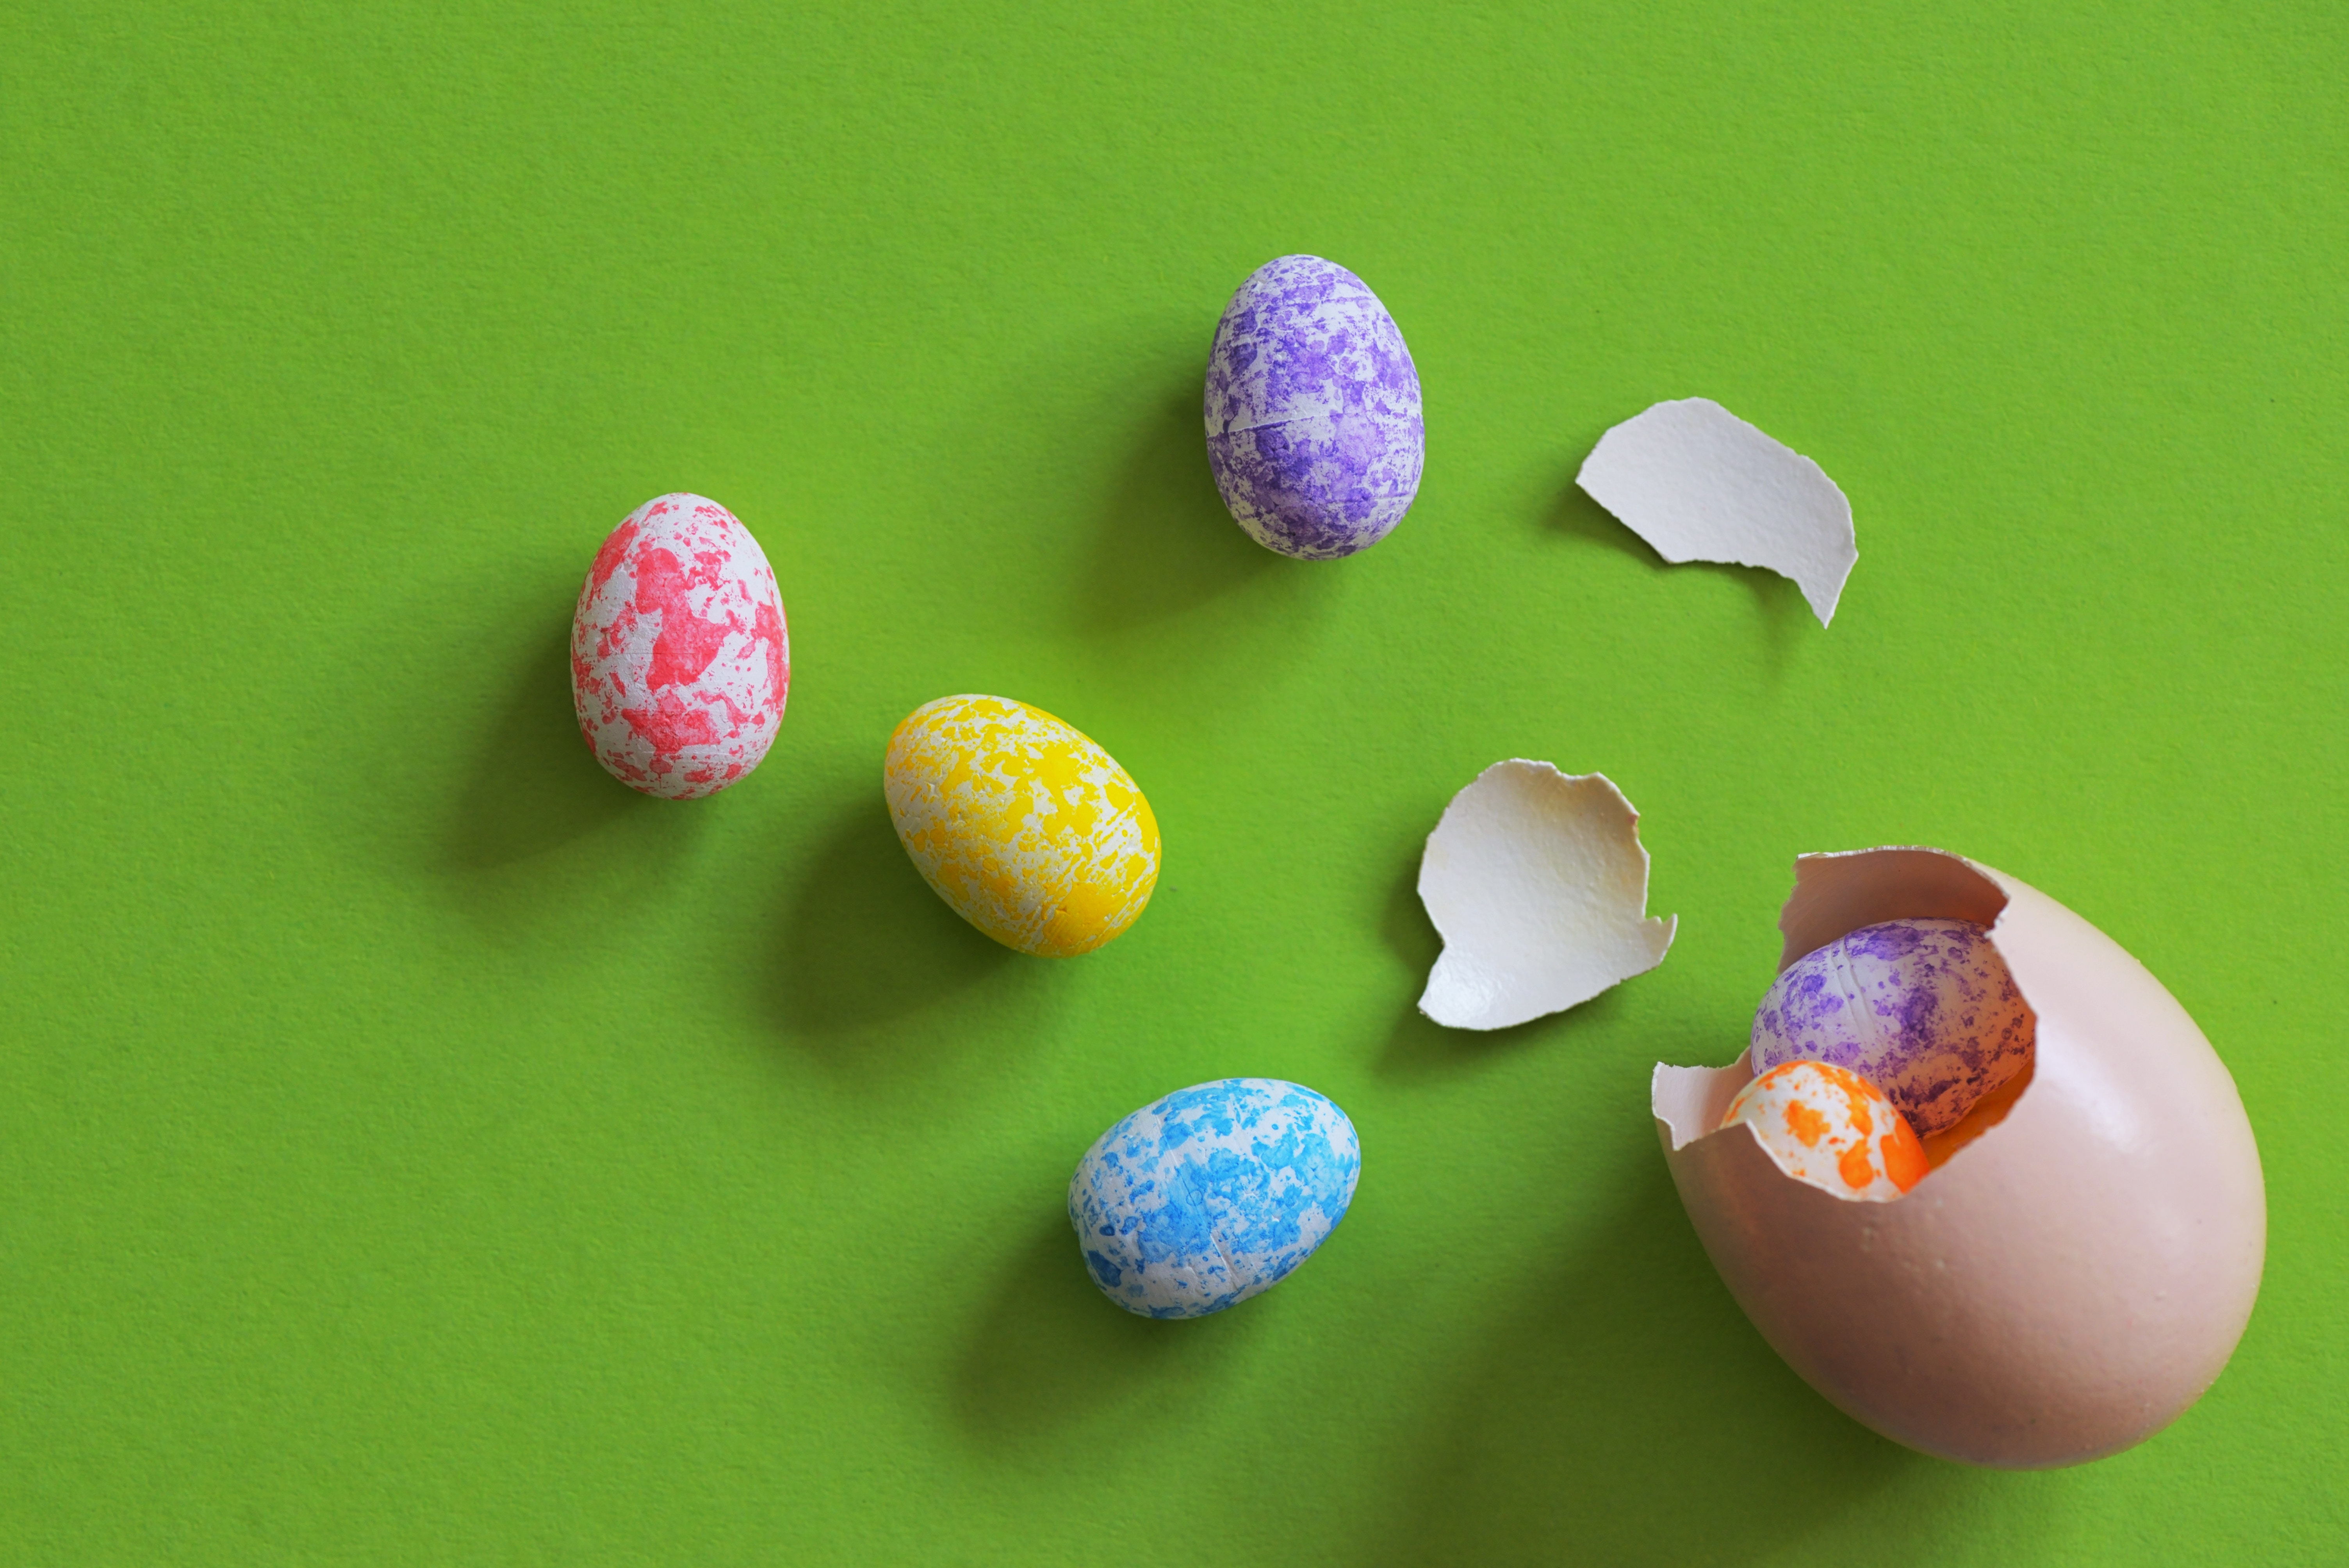 7 Brilliant Ways to Rock Your Sales in April